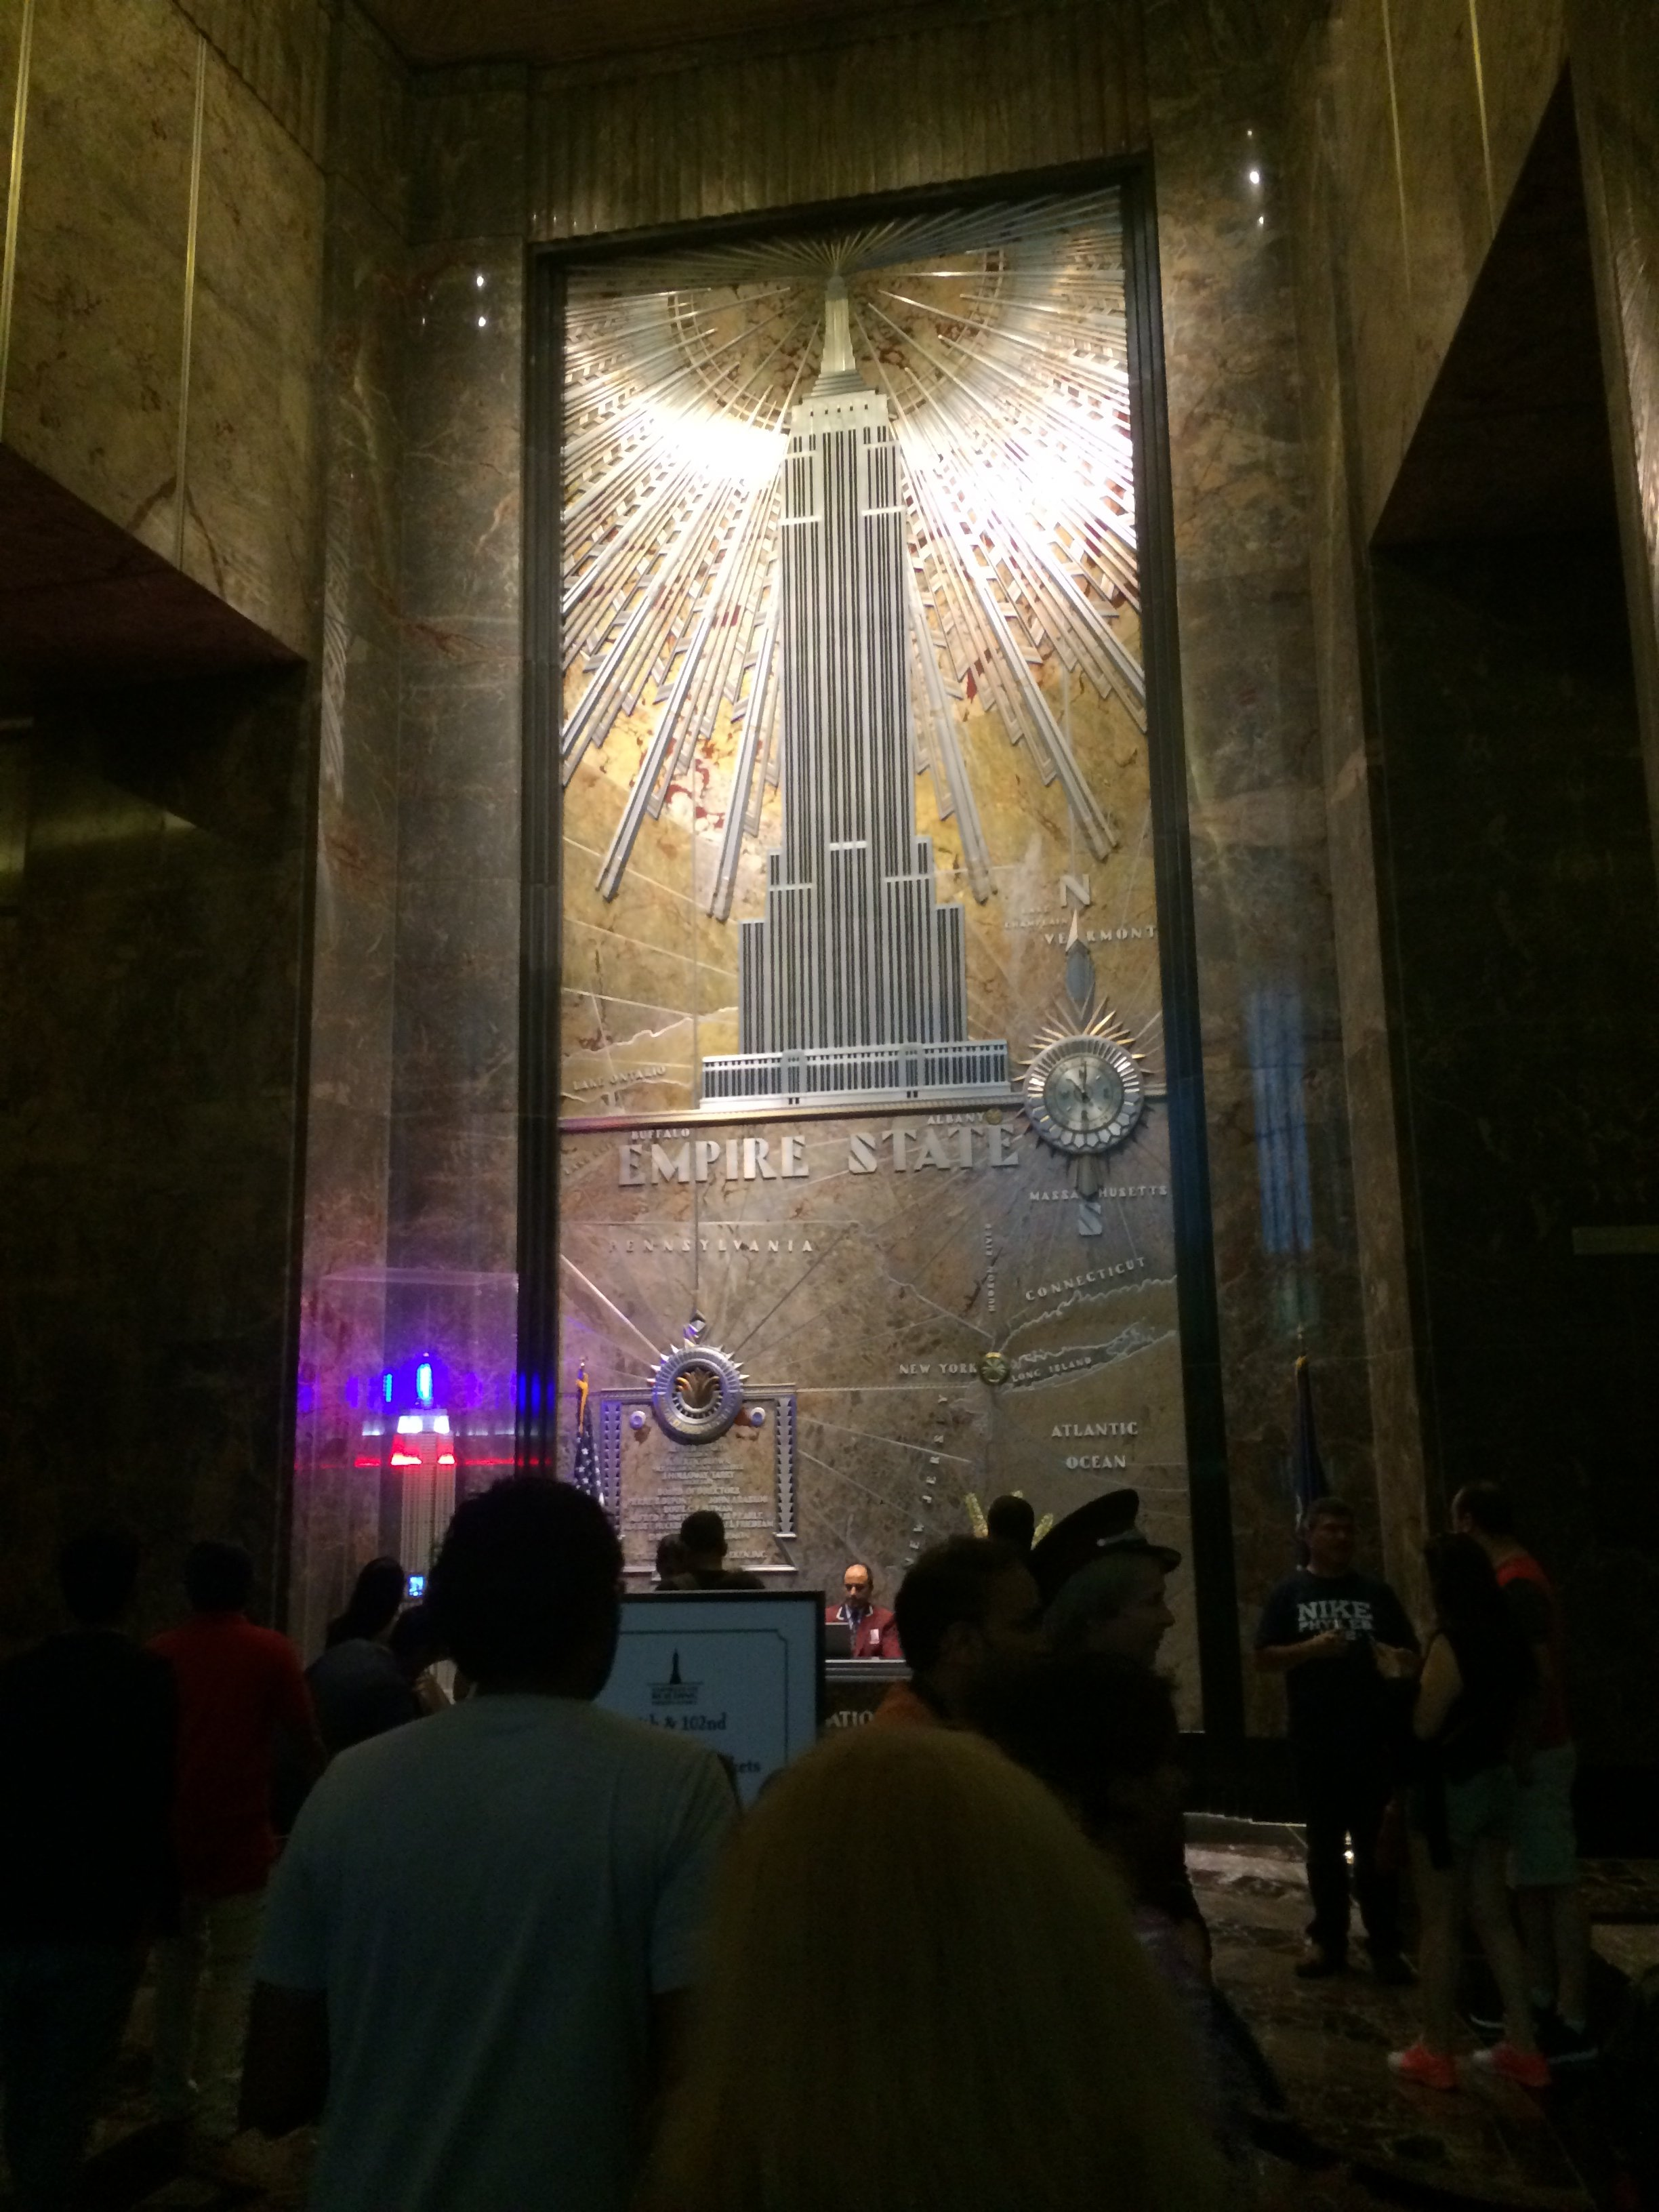 The glorious art-deco ESB lobby. Hmm... reminds me a bit of Hell Cab (the game), doesn't it?